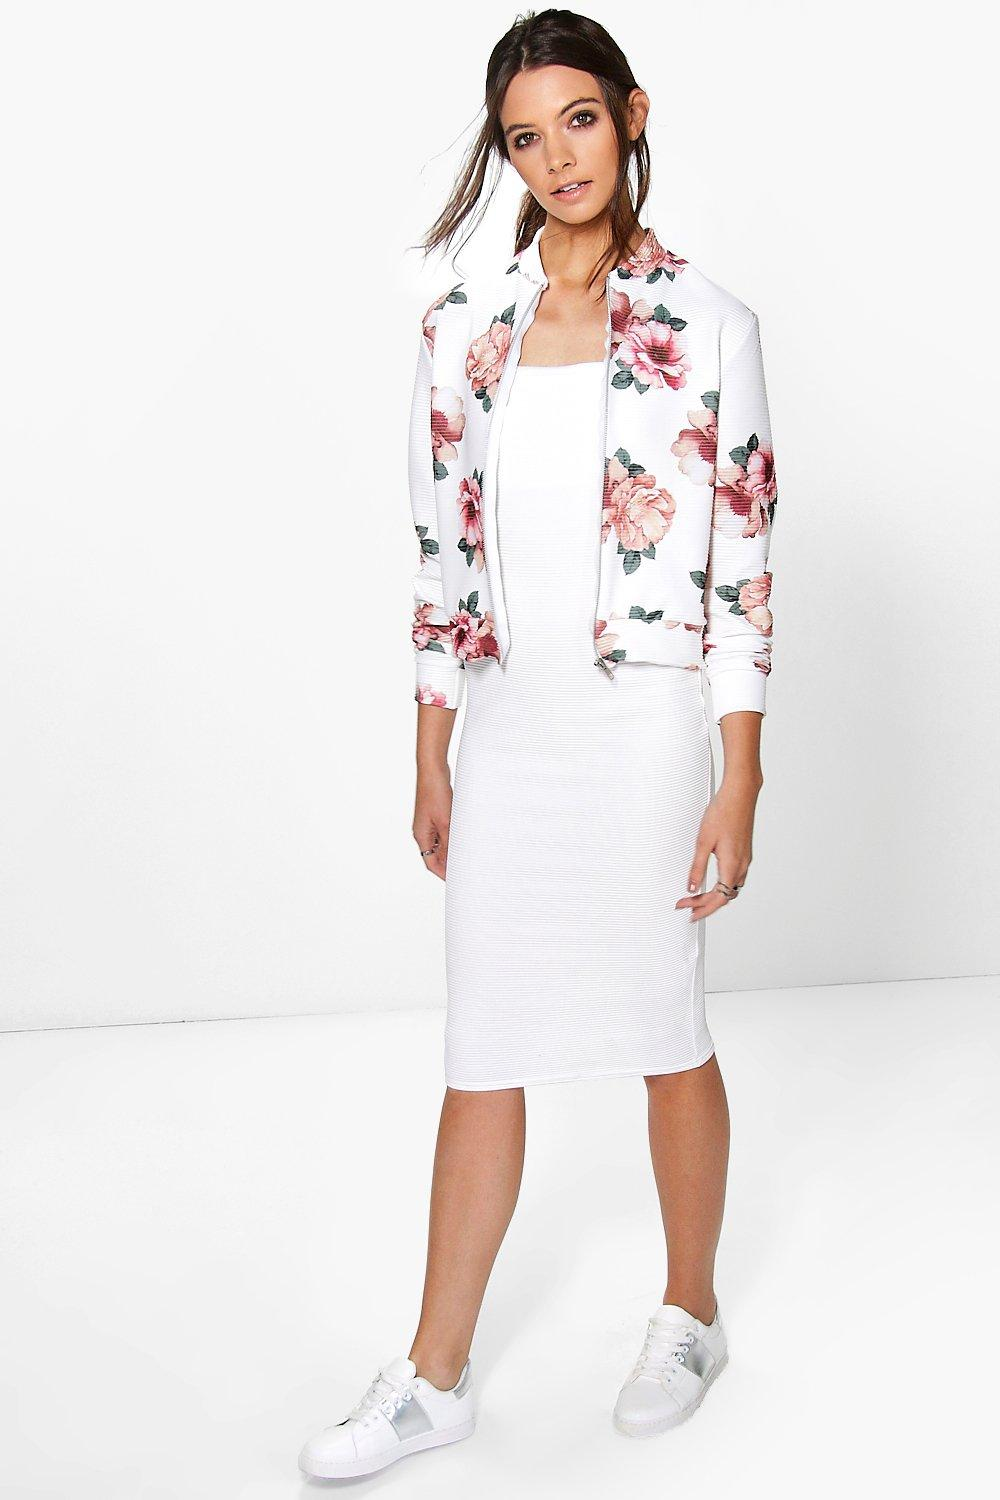 Evron Ribbed Floral Dress & Bomber Co-Ord Set